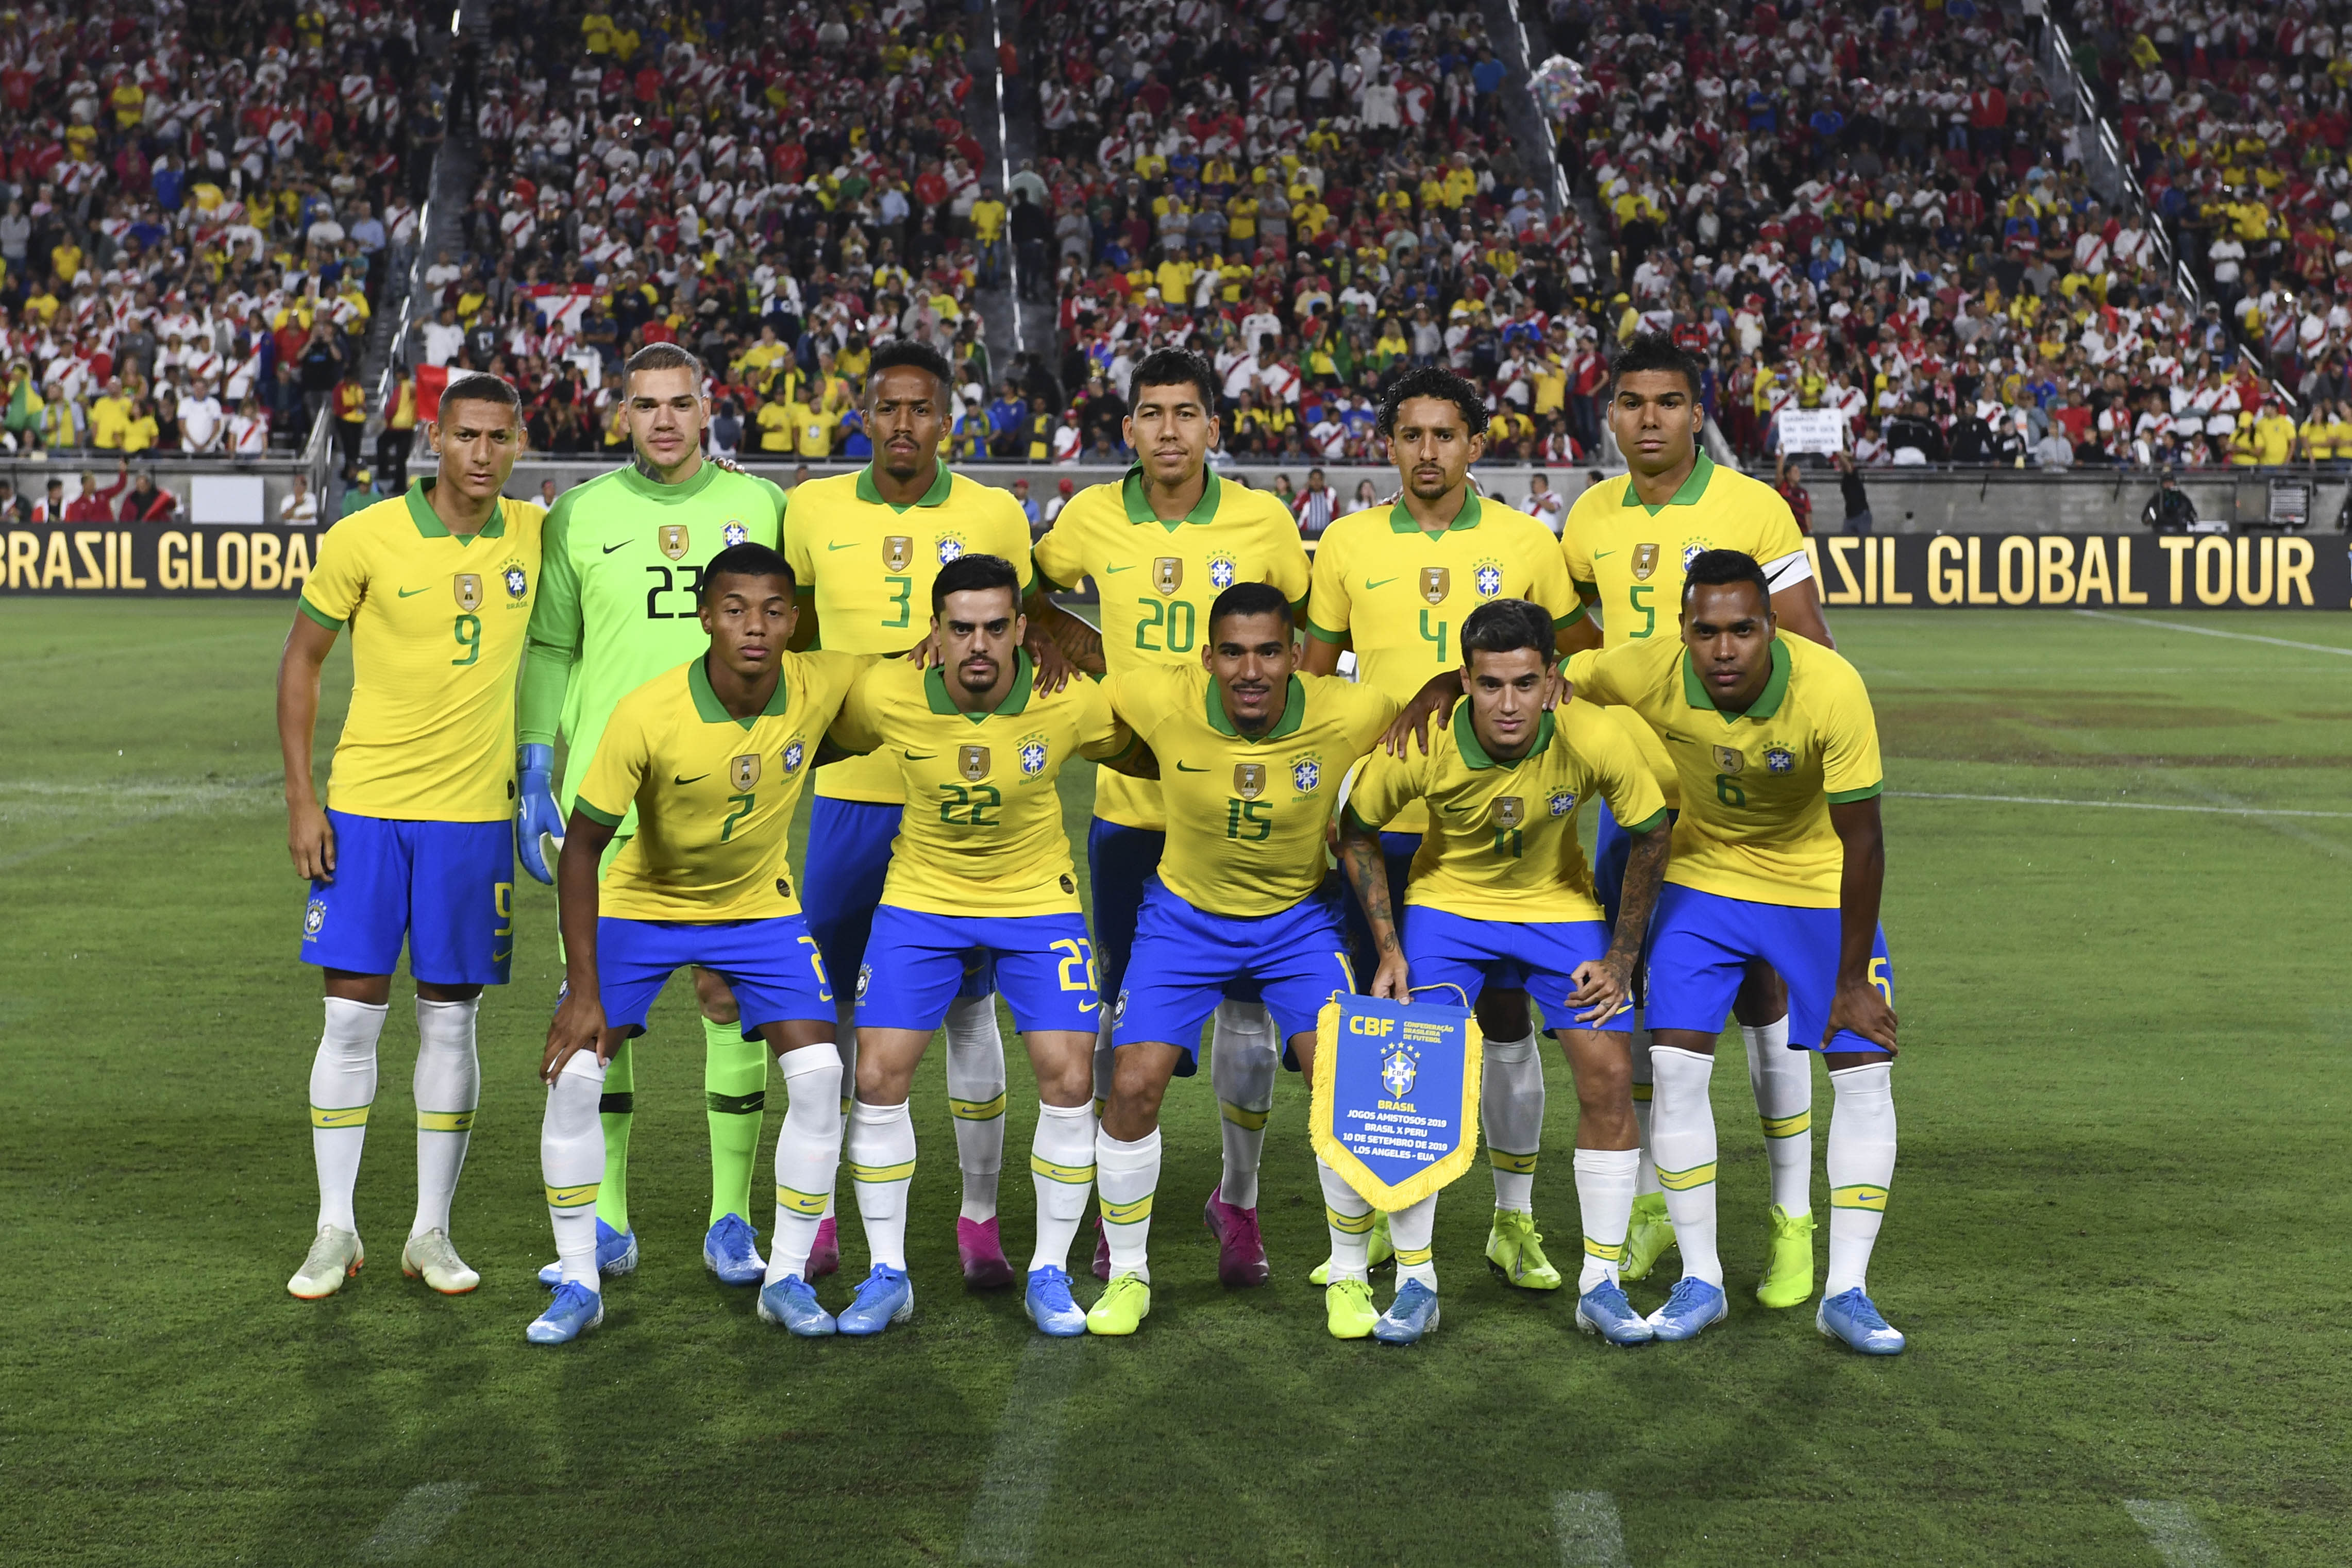 Brazil to play 2 friendlies against Senegal and Nigeria in Singapore in October